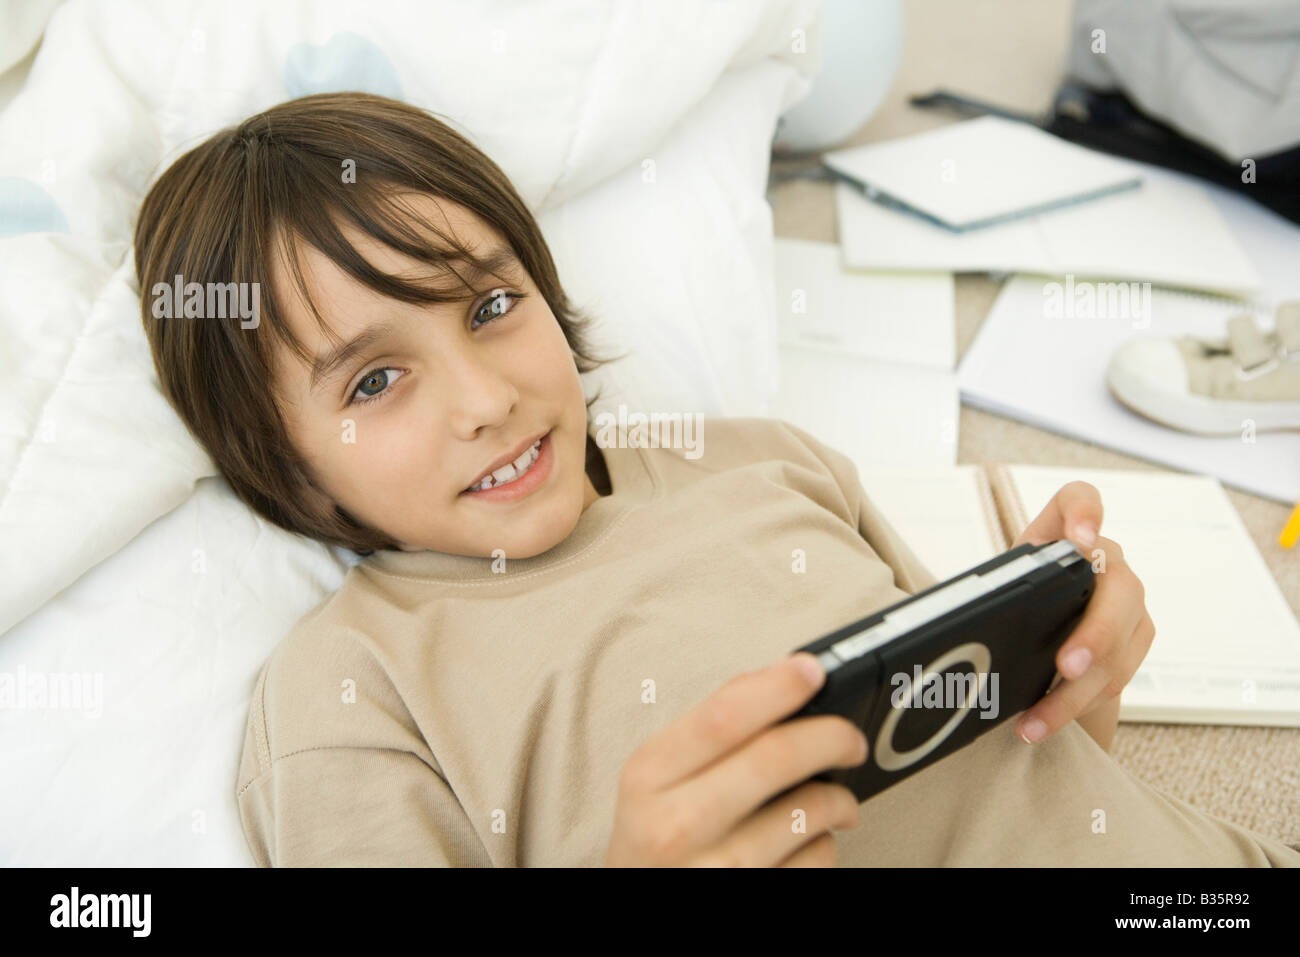 Boy holding handheld video game, lying down and smiling at camera - Stock Image